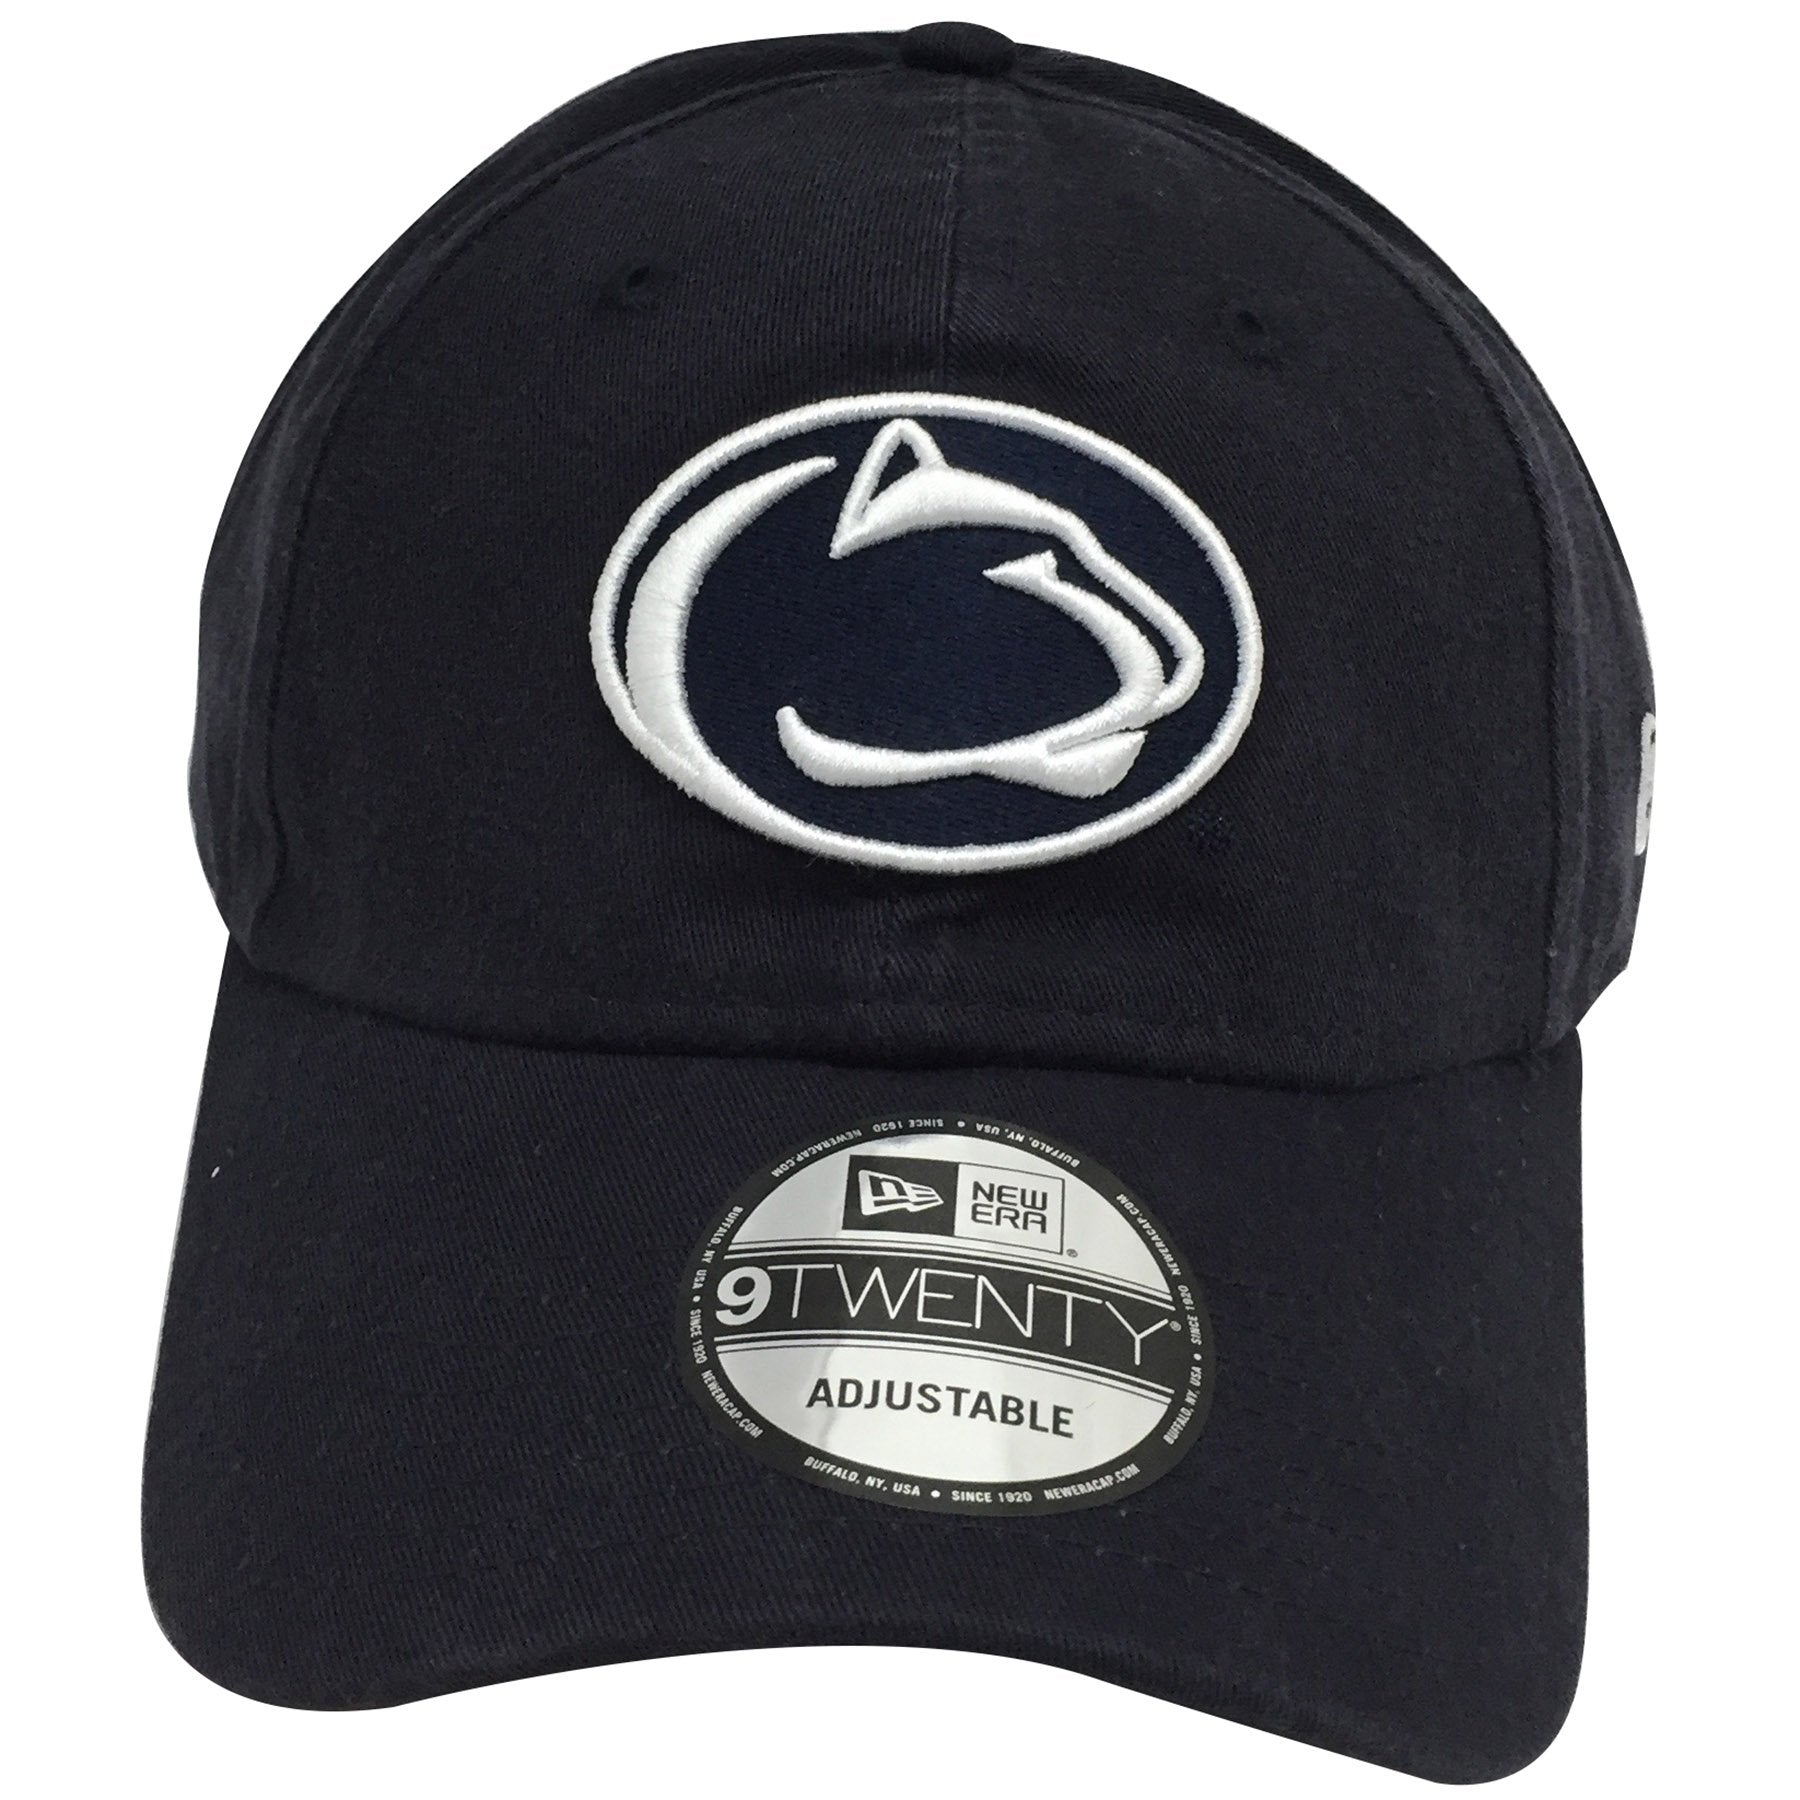 49b50cd271e White outlining embroidery logo of the Penn State Nittany Lions is shown on  the front of